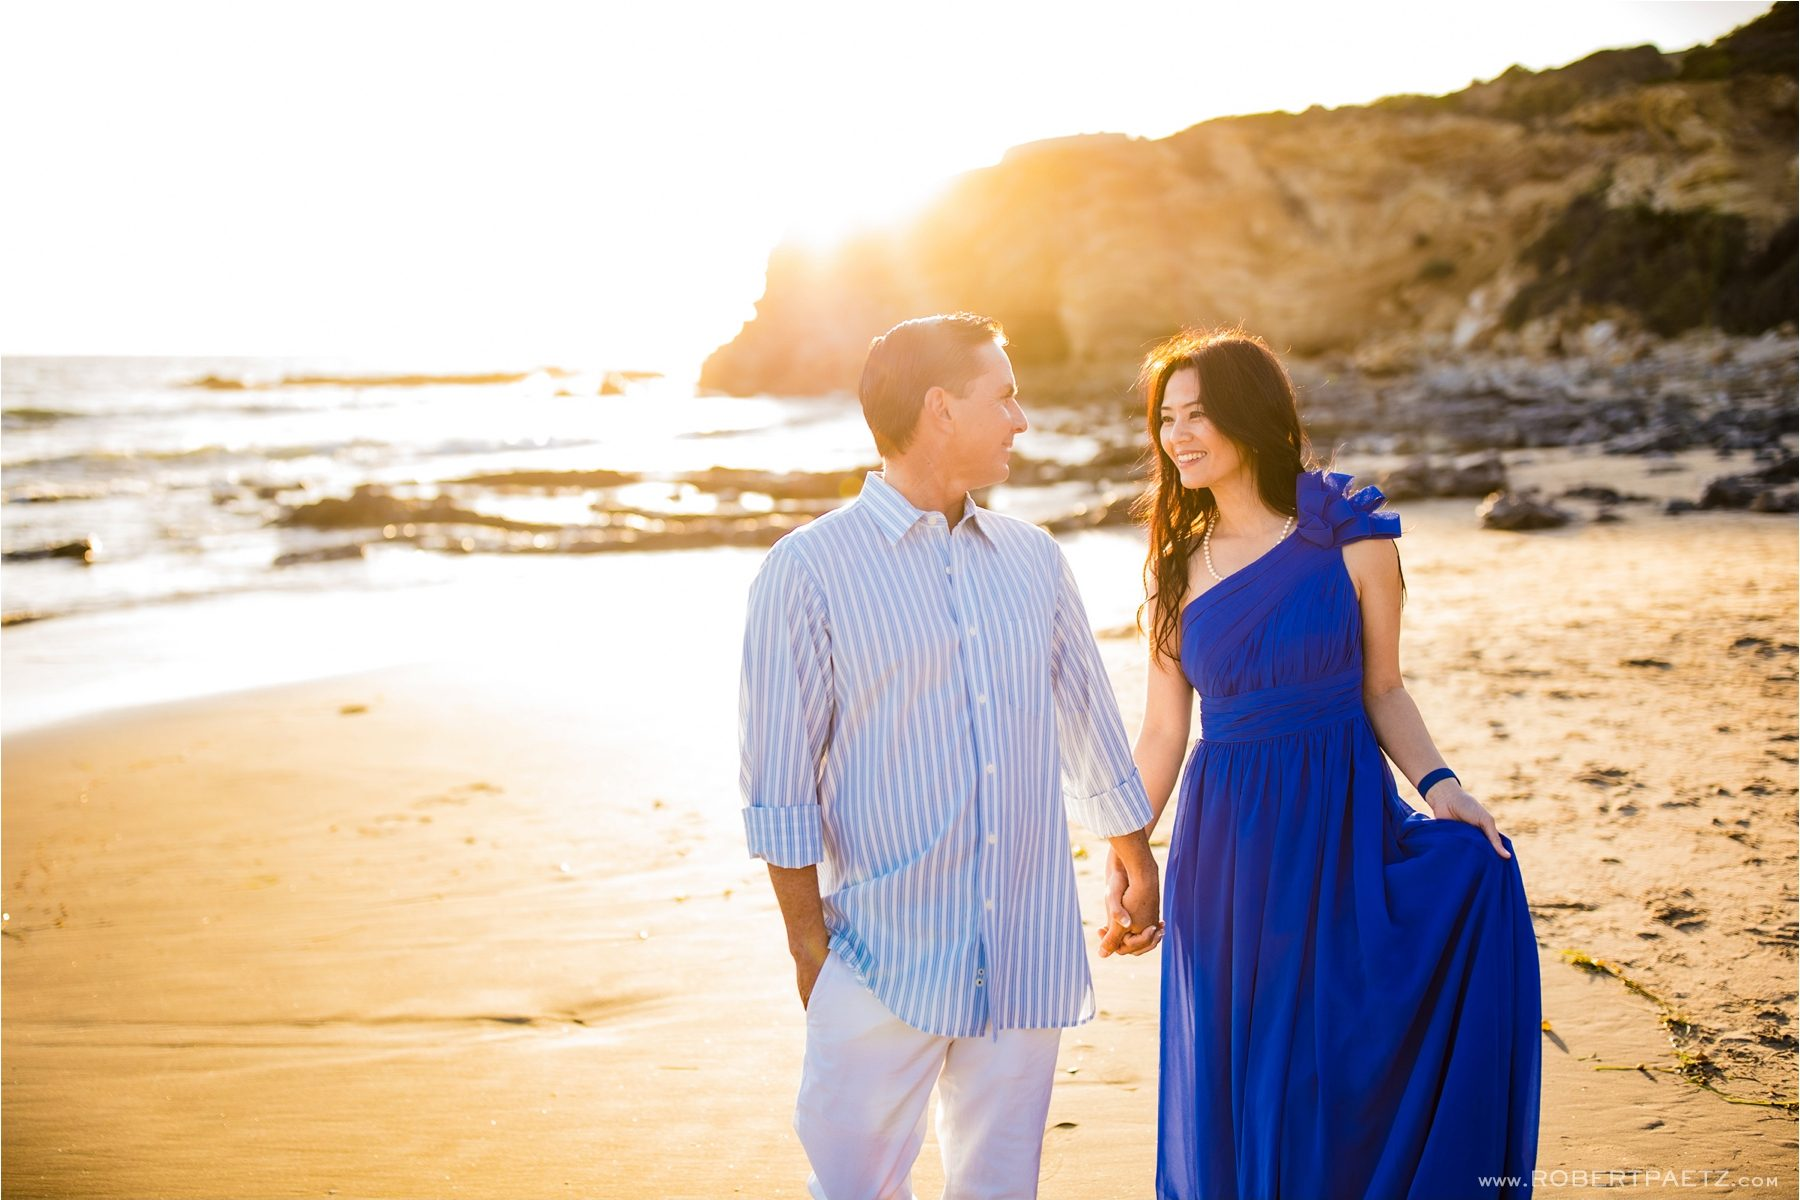 An Engagement photography session at Crystal Cove State Park in Newport Beach, California photographed by the destination wedding photographer, Robert Paetz, who is based in Los Angeles.